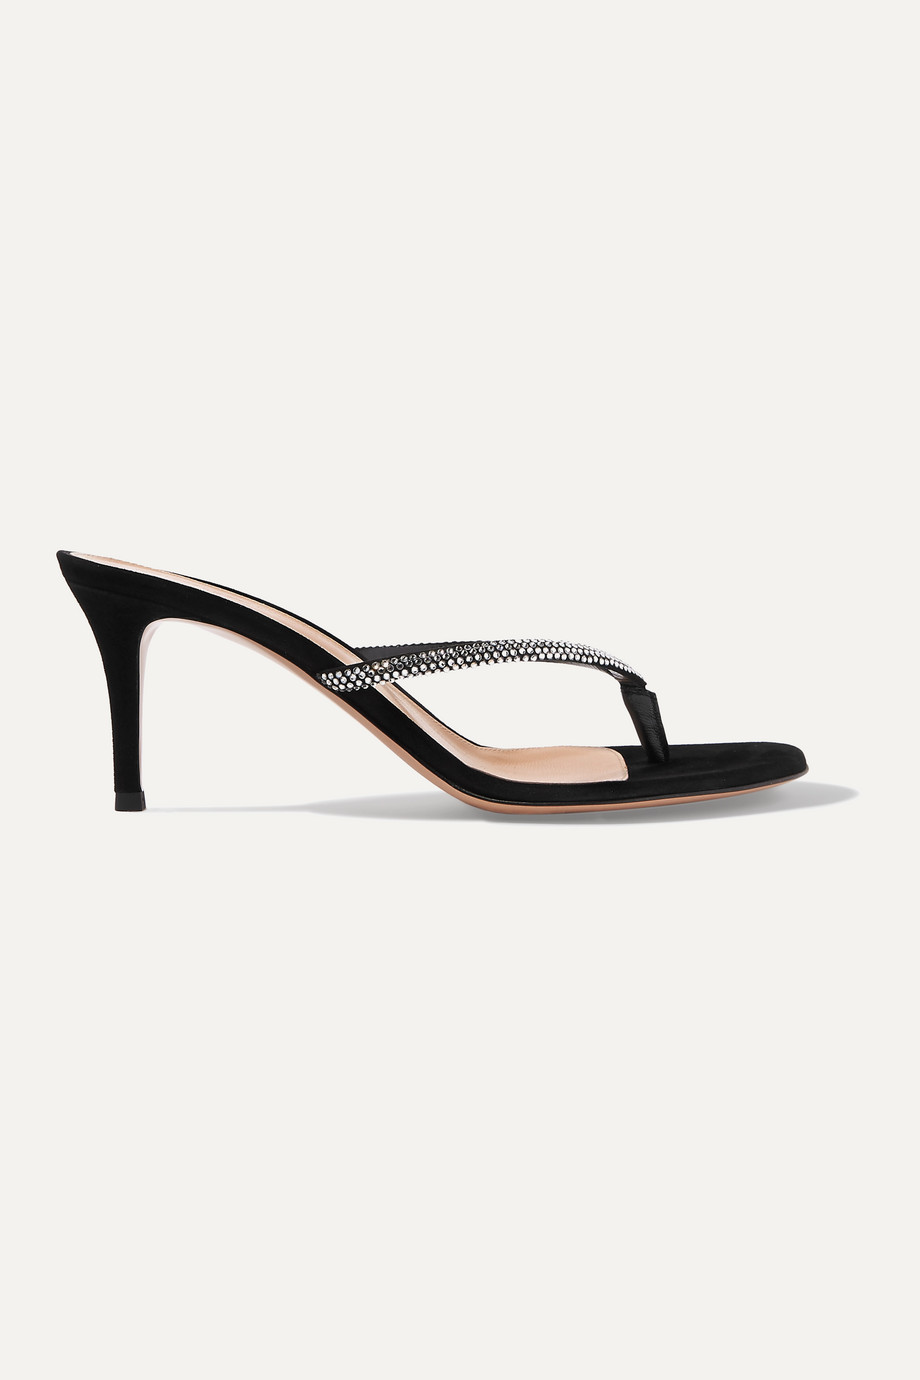 GIANVITO ROSSI Calypso 70 crystal-embellished suede sandals